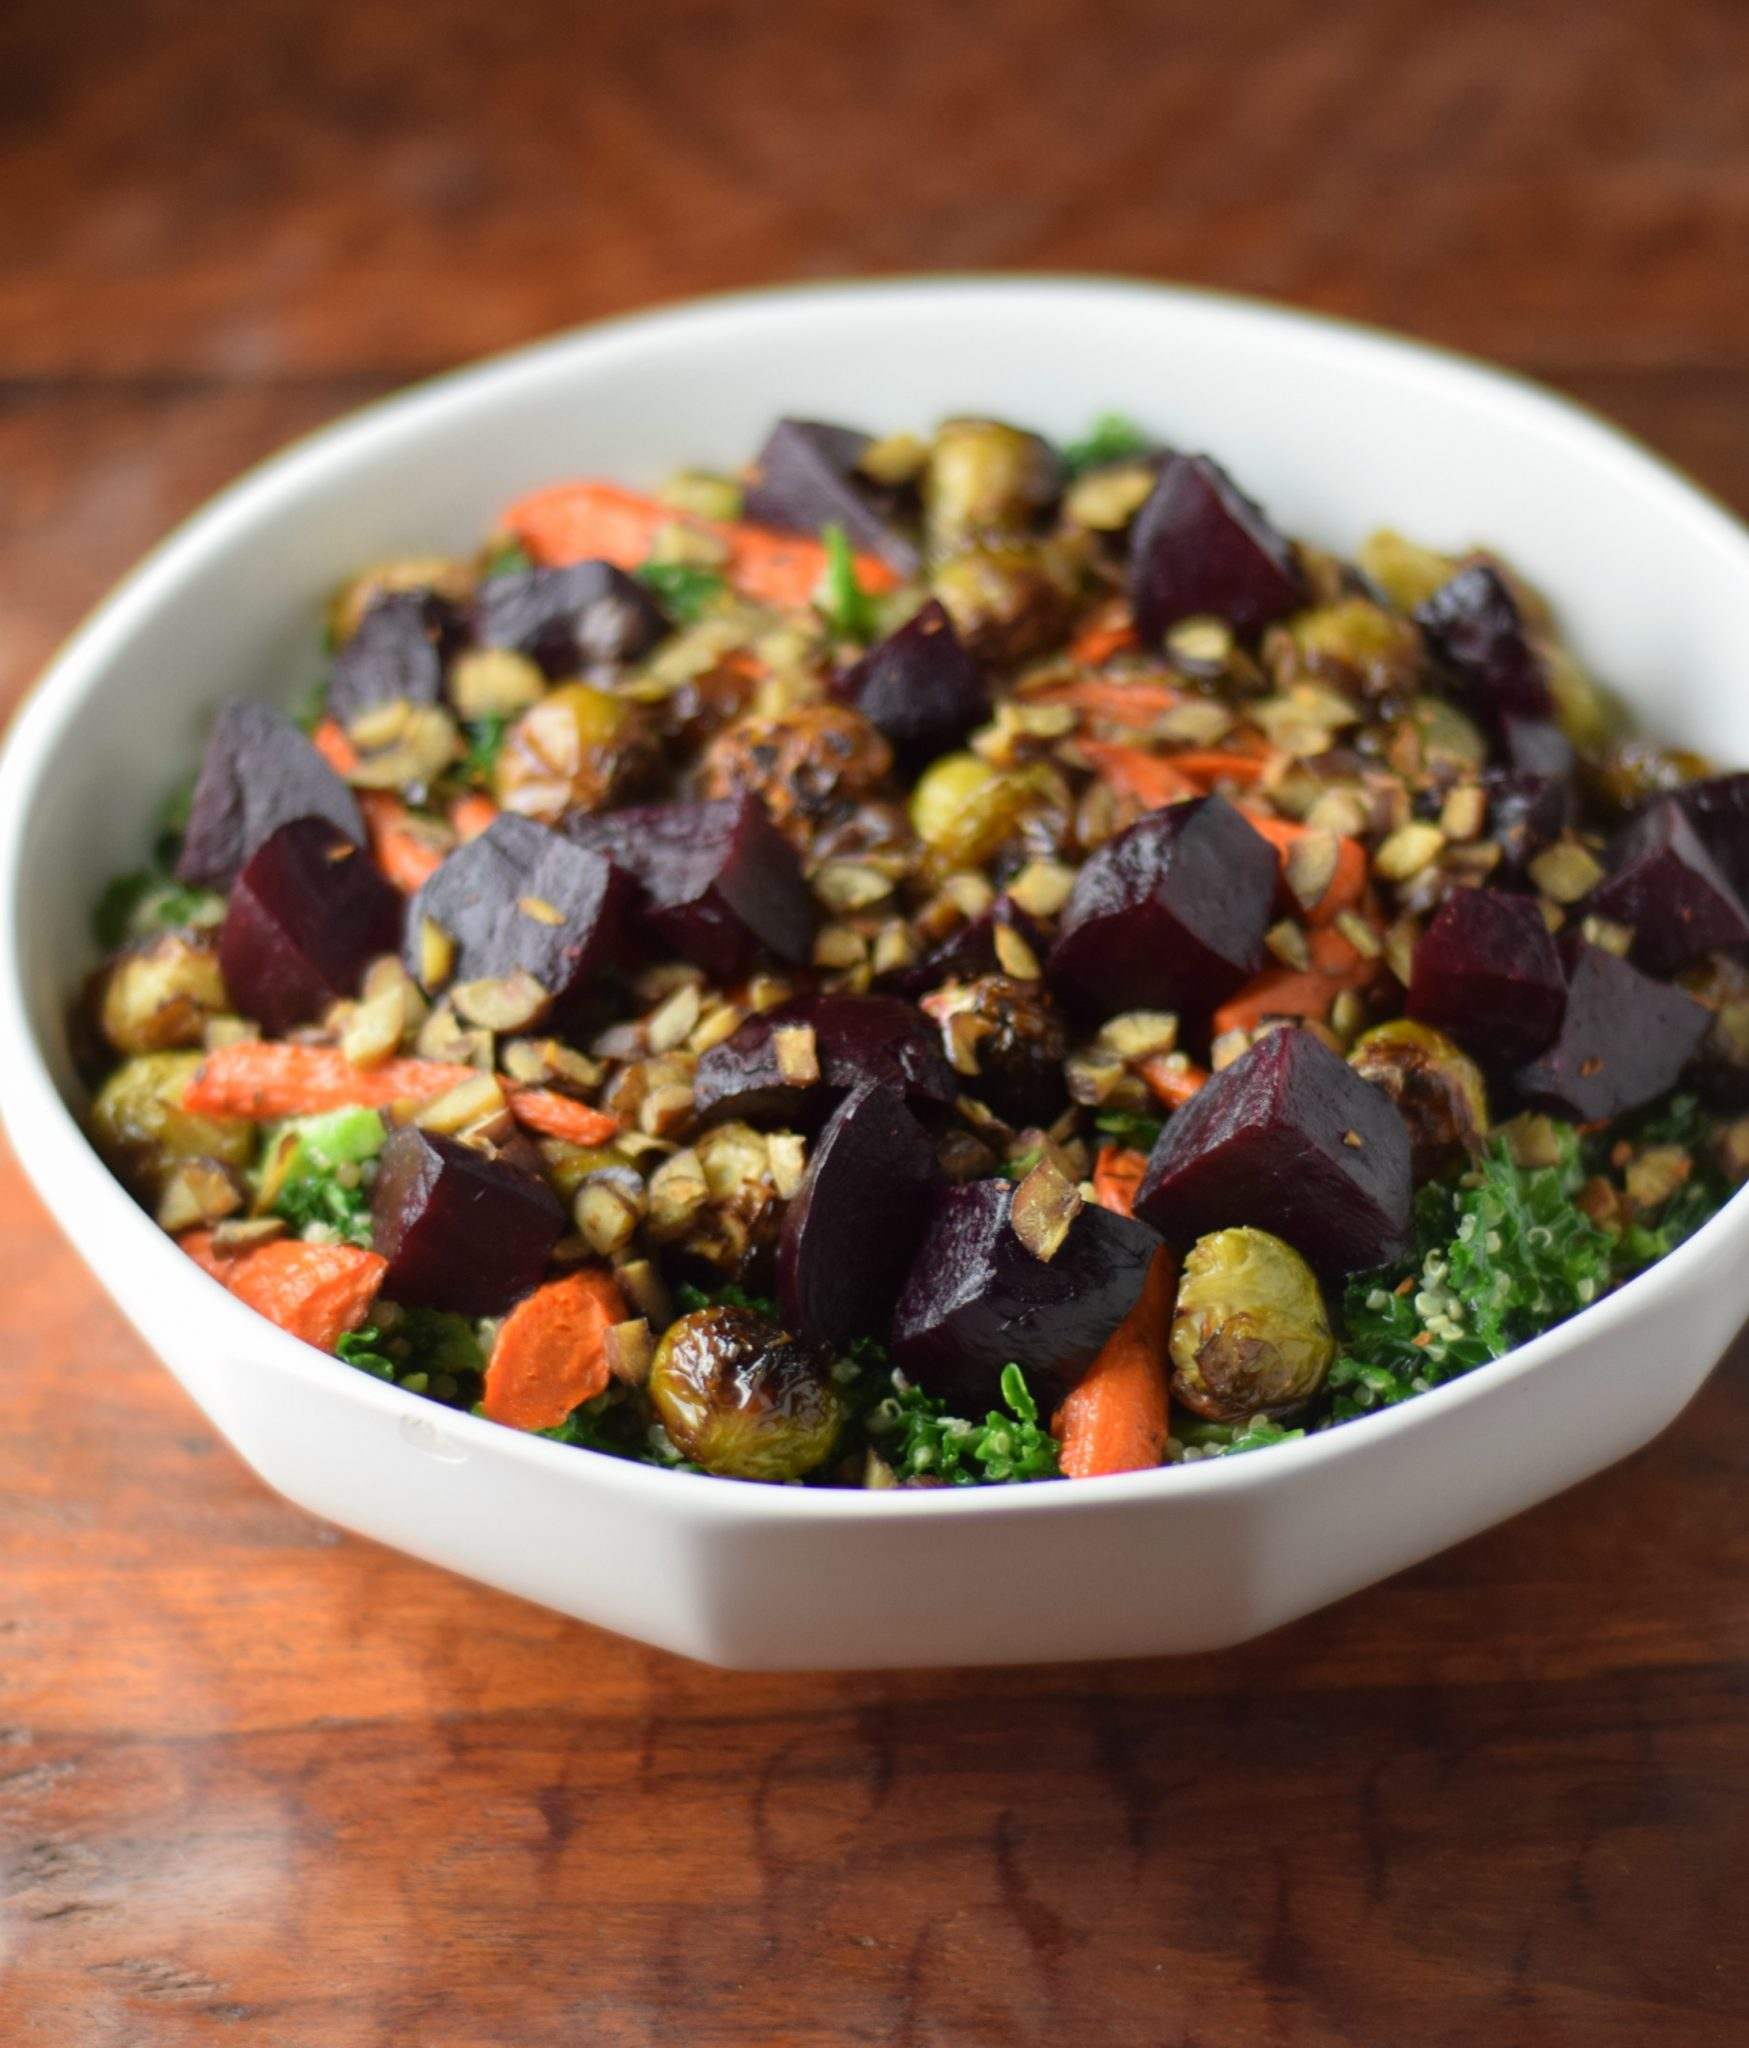 Roasted Vegetable, Kale, and Quinoa Salad with Clementine Vinaigrette